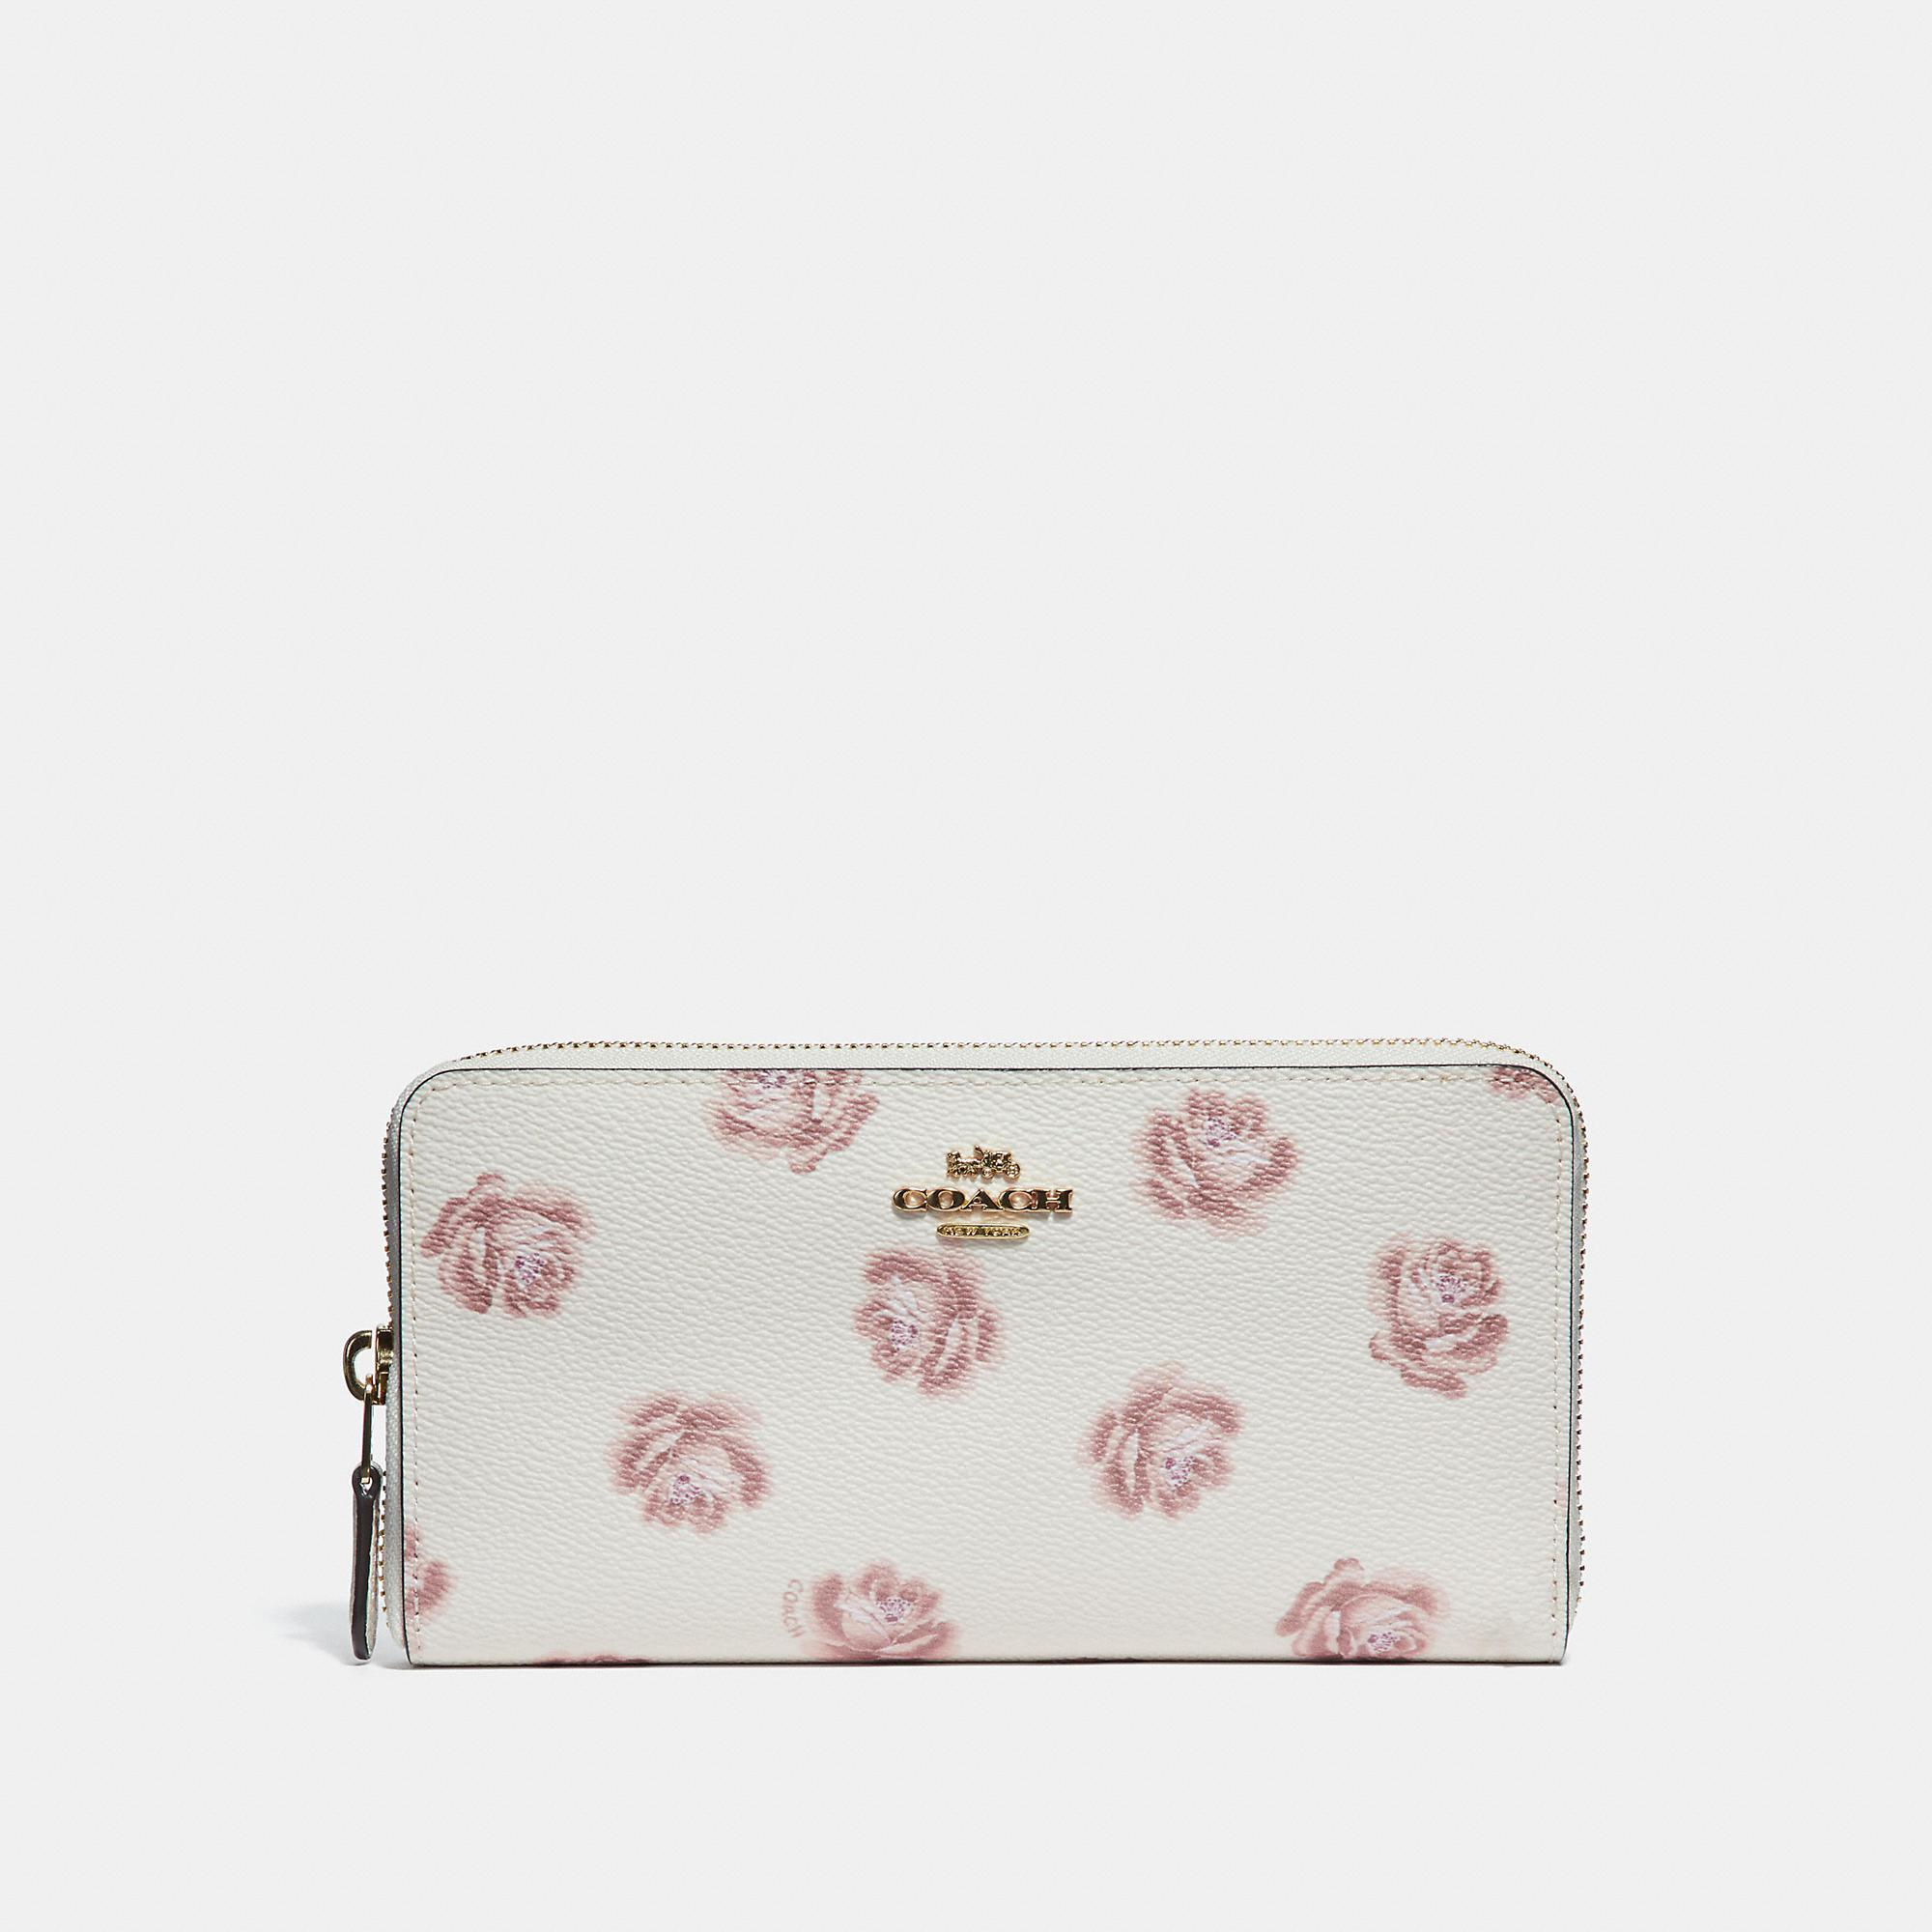 Lyst - COACH Accordion Zip Wallet With Rose Print in Pink 6f564df40e